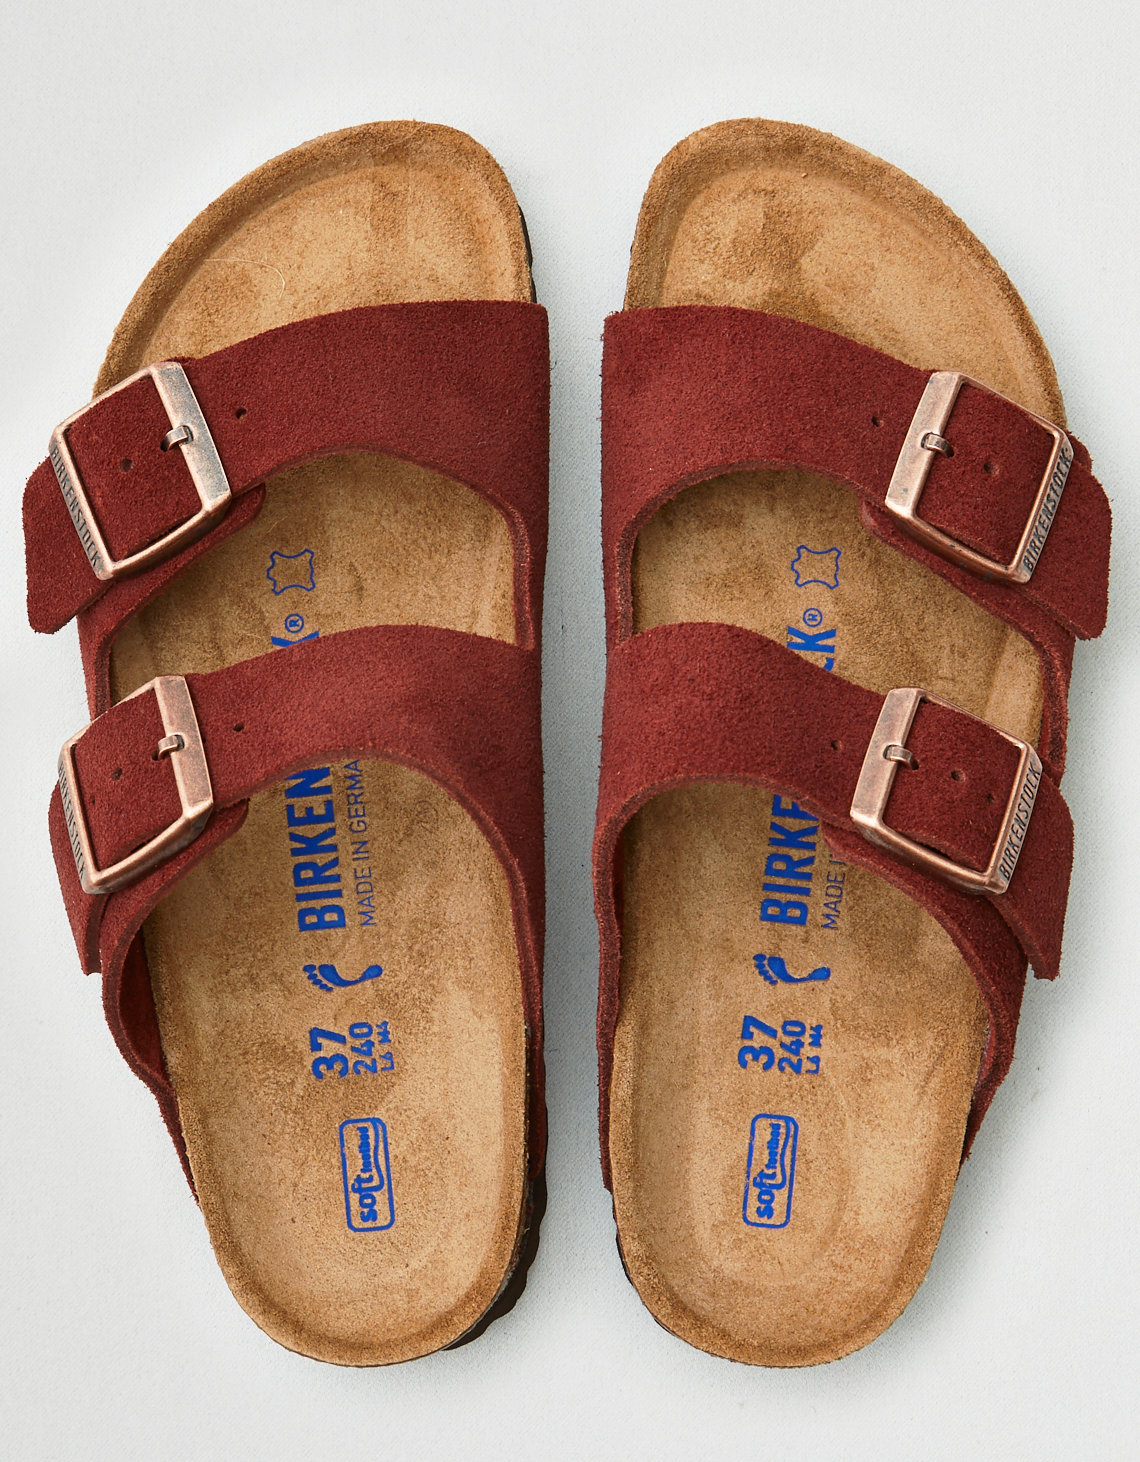 88a3f45892d Birkenstock Arizona Soft Footbed